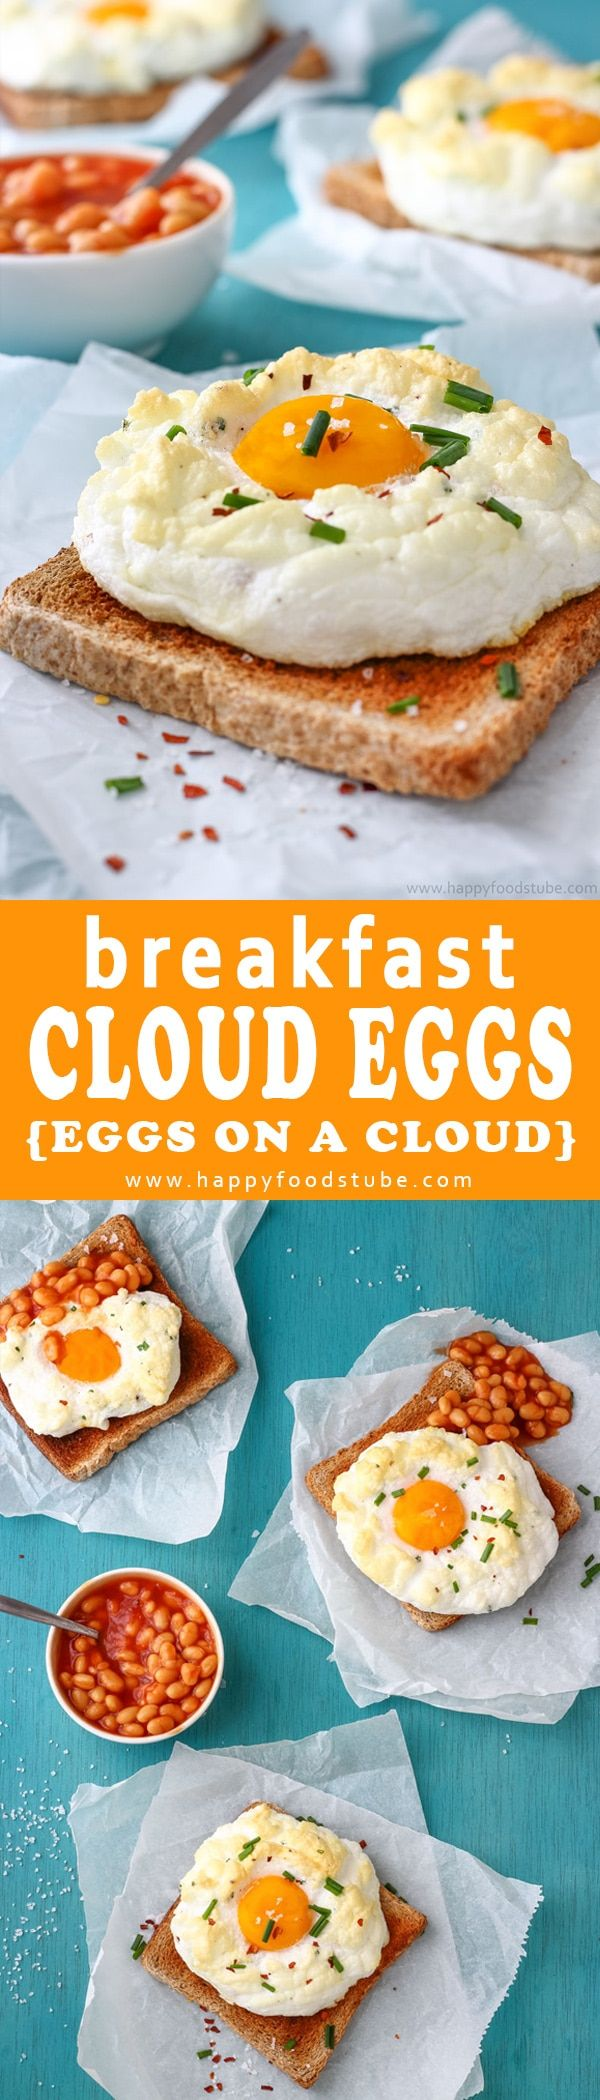 Easy Cloud Eggs Recipe also called Eggs on a Cloud. Its a fun way to make eggs for breakfast. How to make a cloud eggs? Here is super simple recipe and quick step by step video. Imagine fluffy whites, runny yolks and texture light as clouds. That's what eggs on a cloud are all about :) via @happyfoodstube